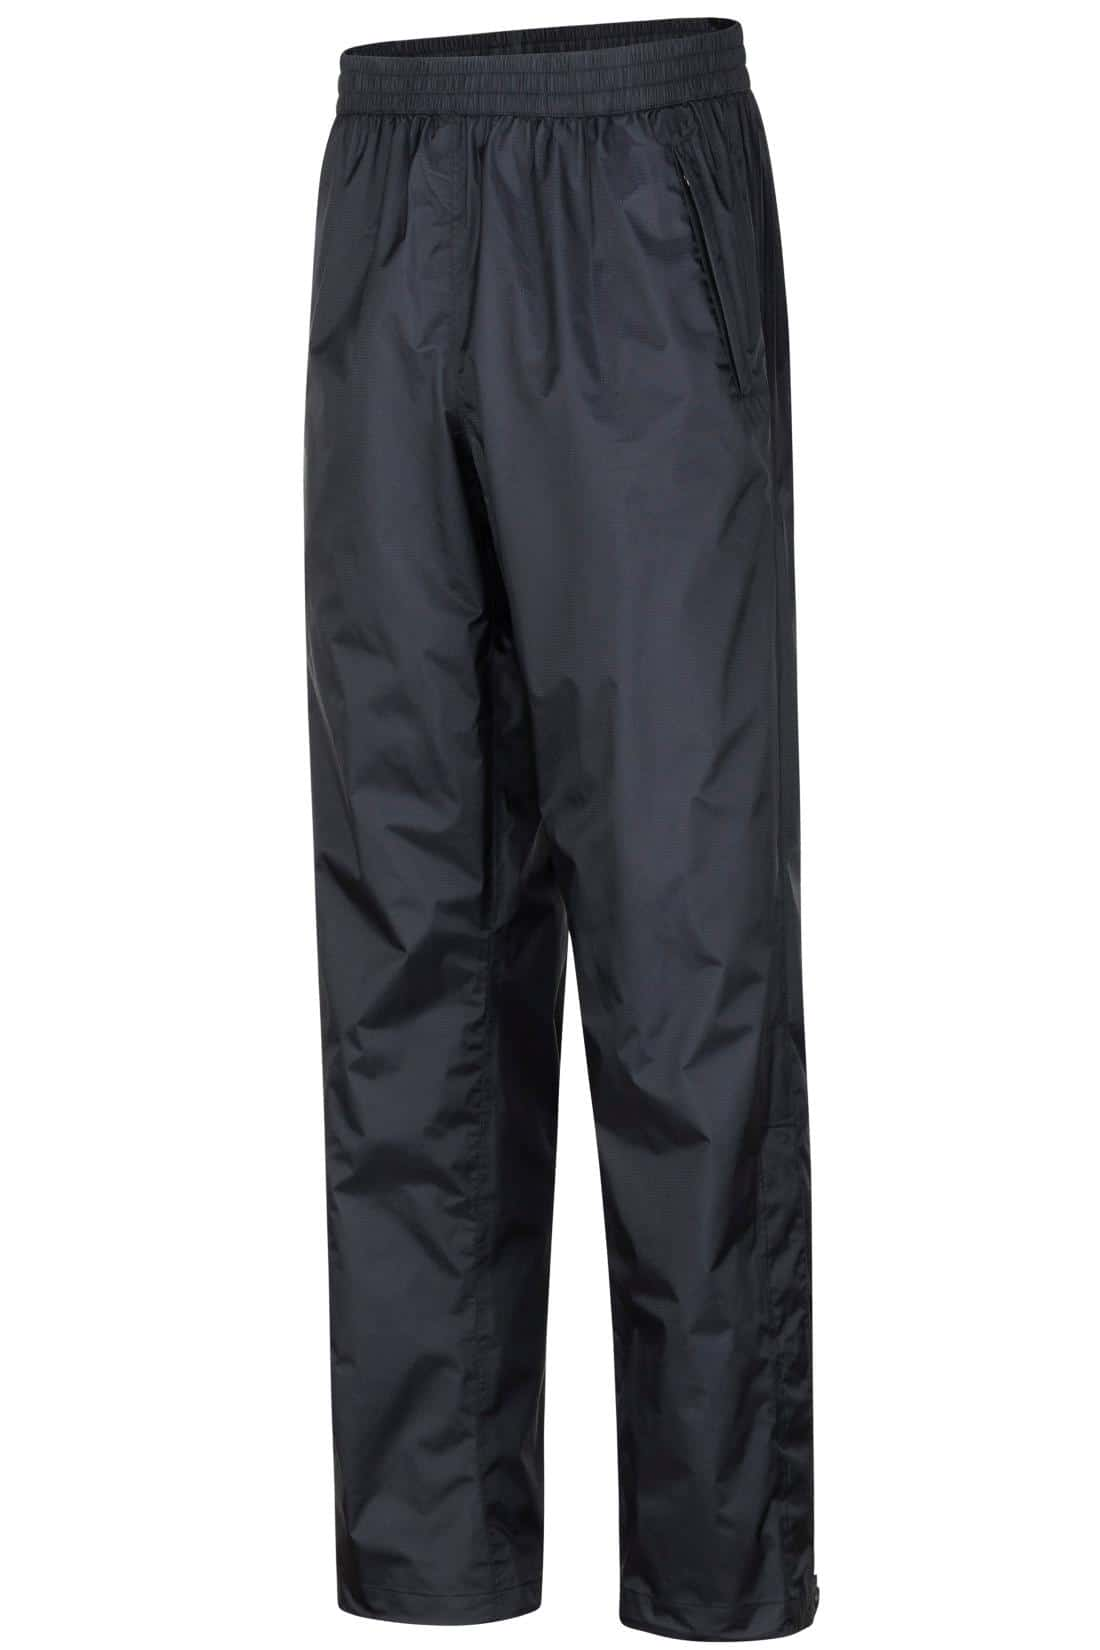 28b72f267c PreCip Eco Pant - Men's • Wanderlust Outfitters - Outdoor Clothing ...